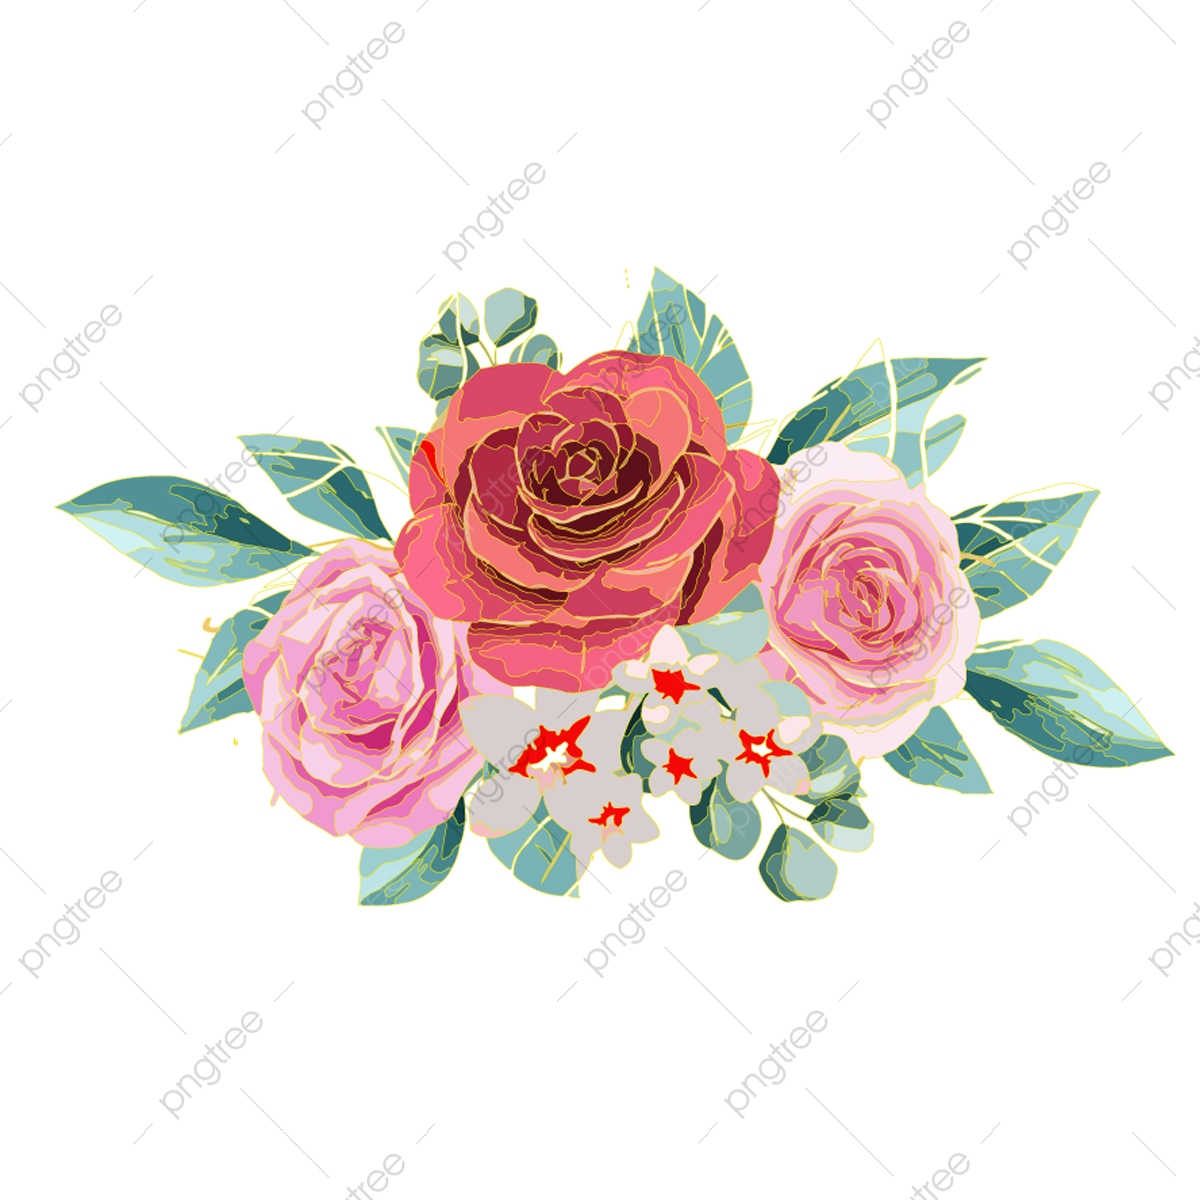 Rose Flower Vector Summer Vector Illustration Png And Vector With Transparent Background For Free Download